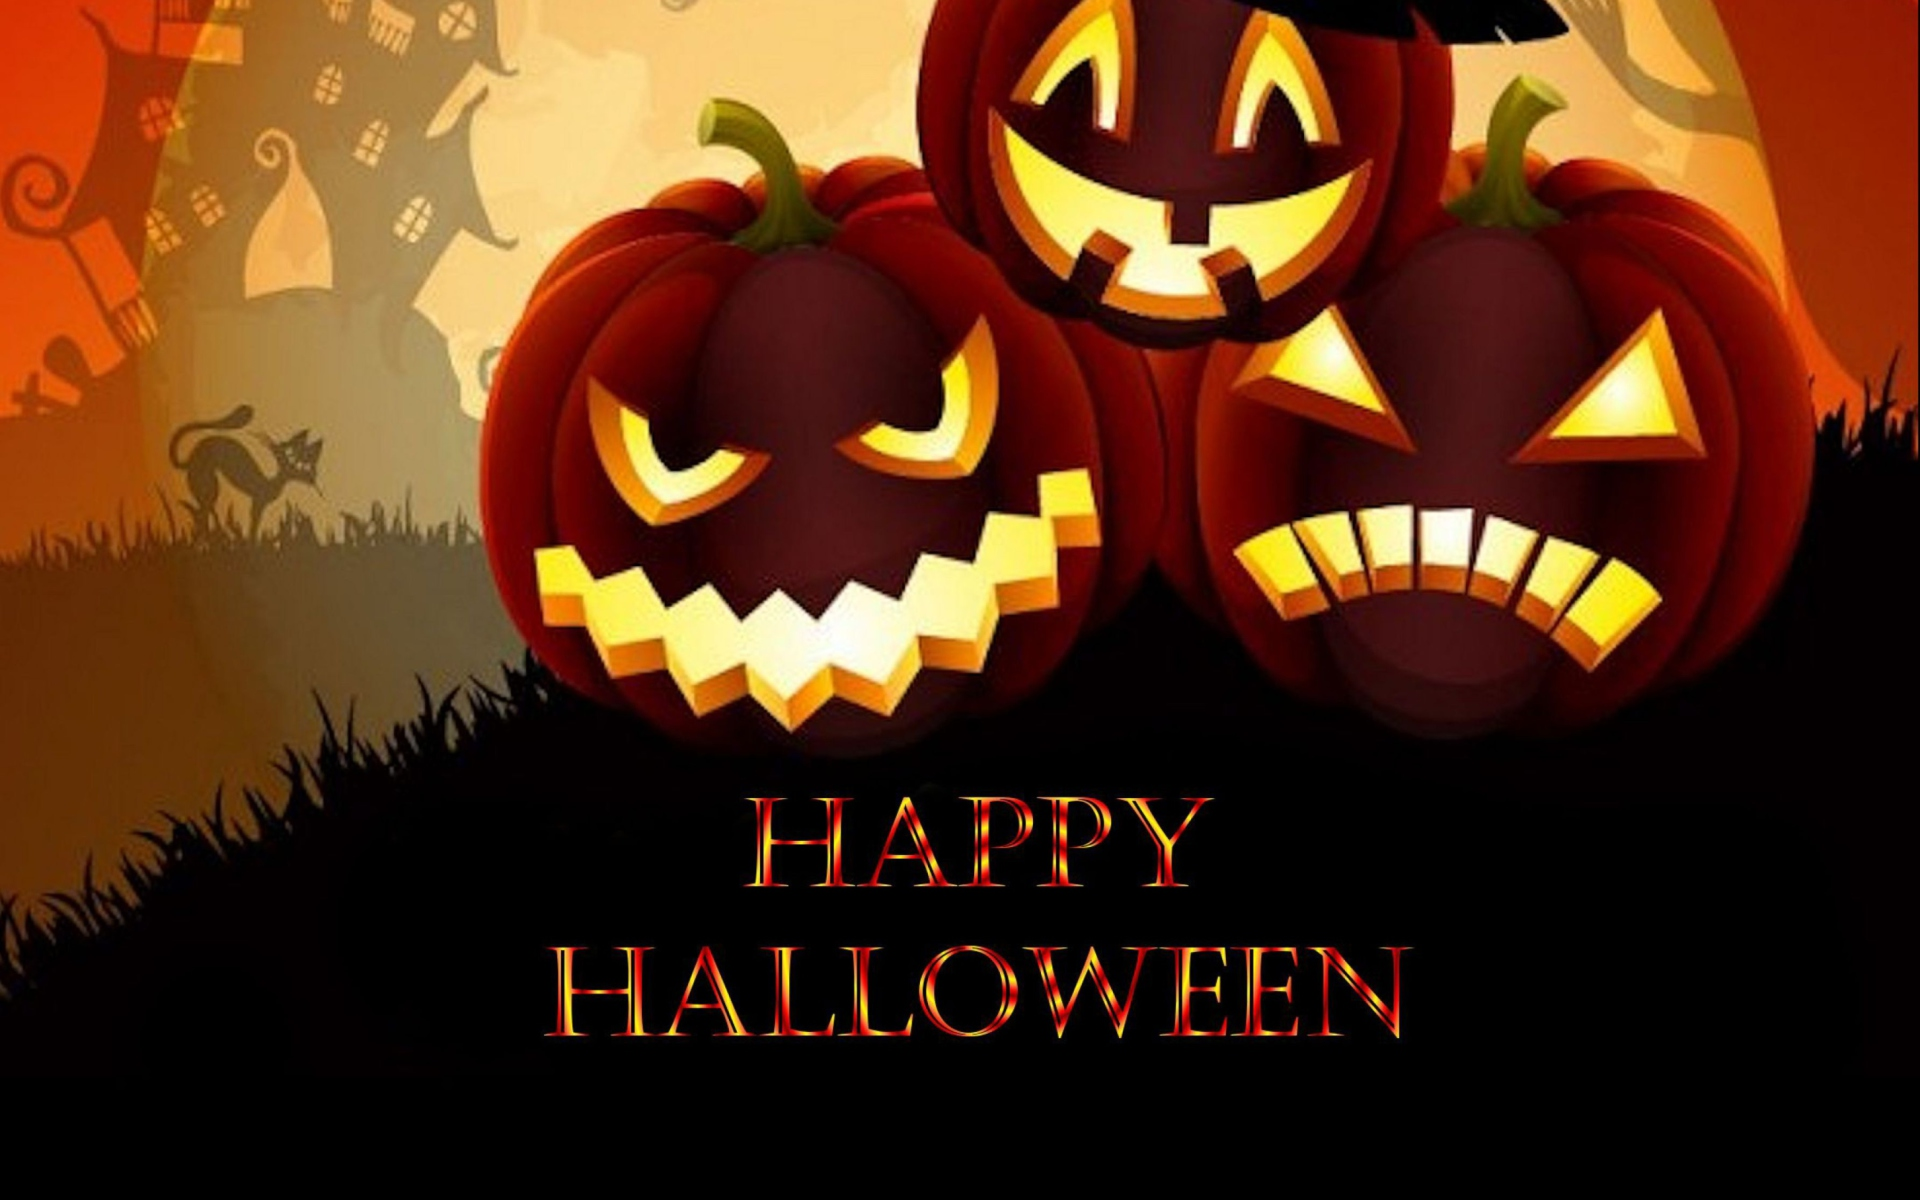 Happy Halloween HD wallpapers 1920x1200